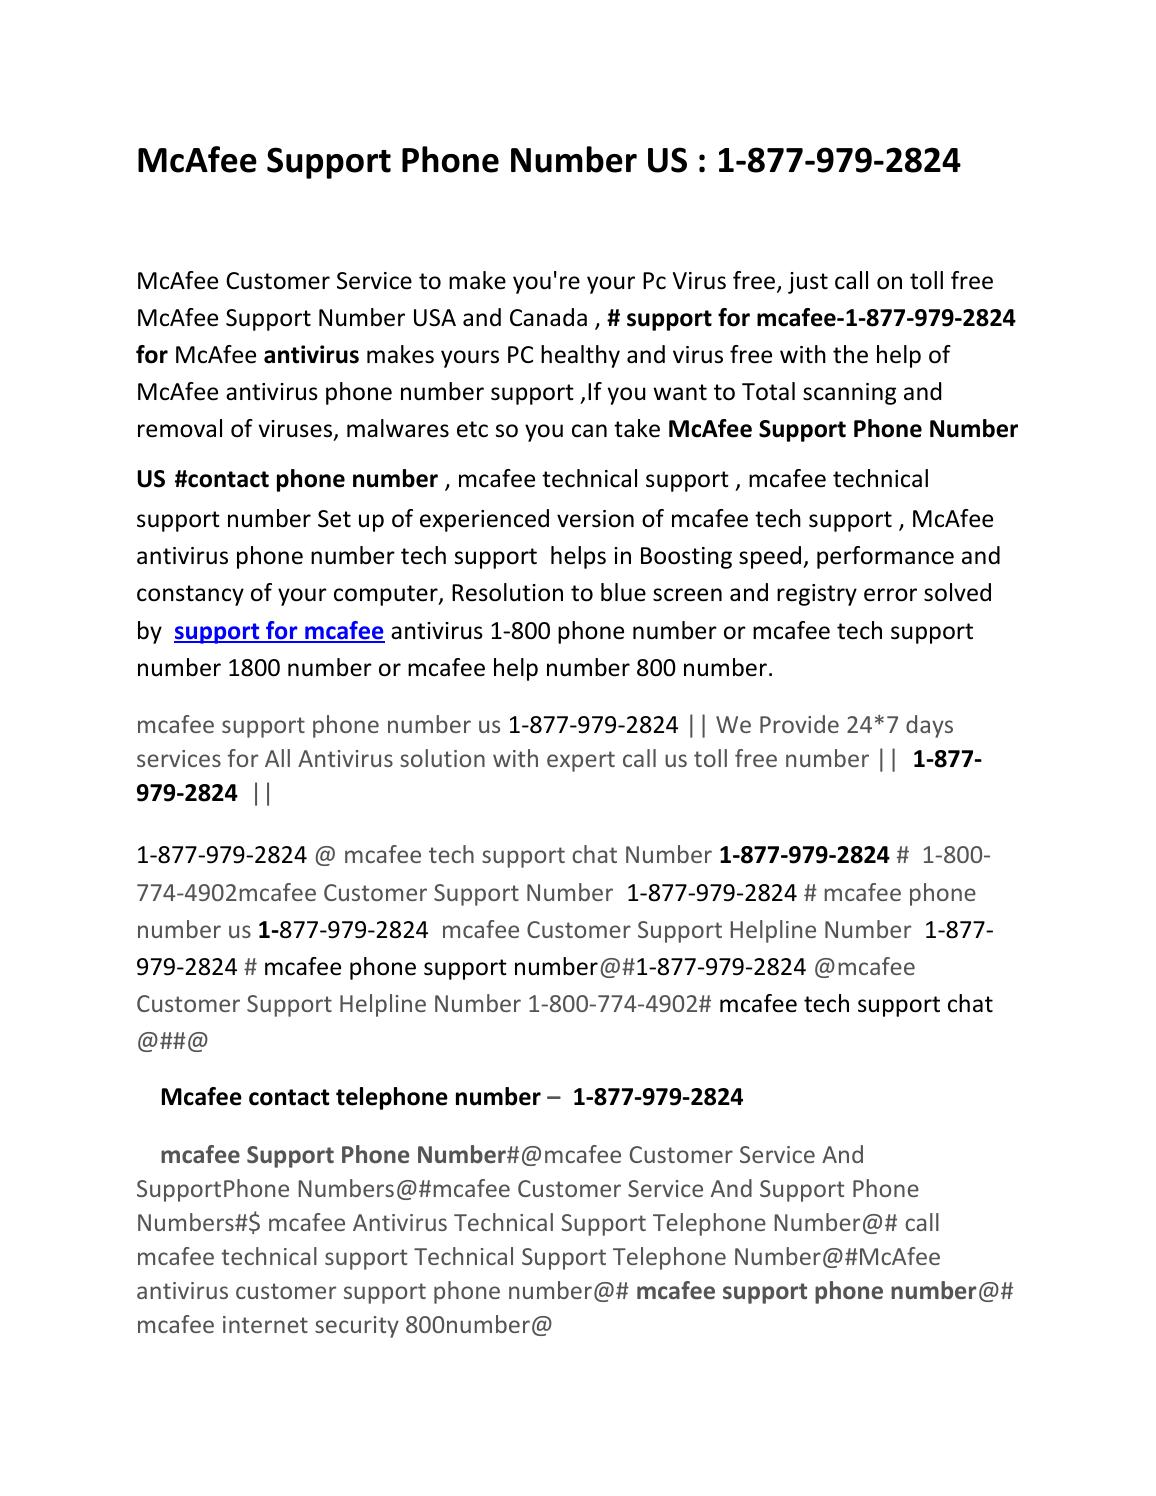 Mcafee support phone number us by Ampin Seth - issuu